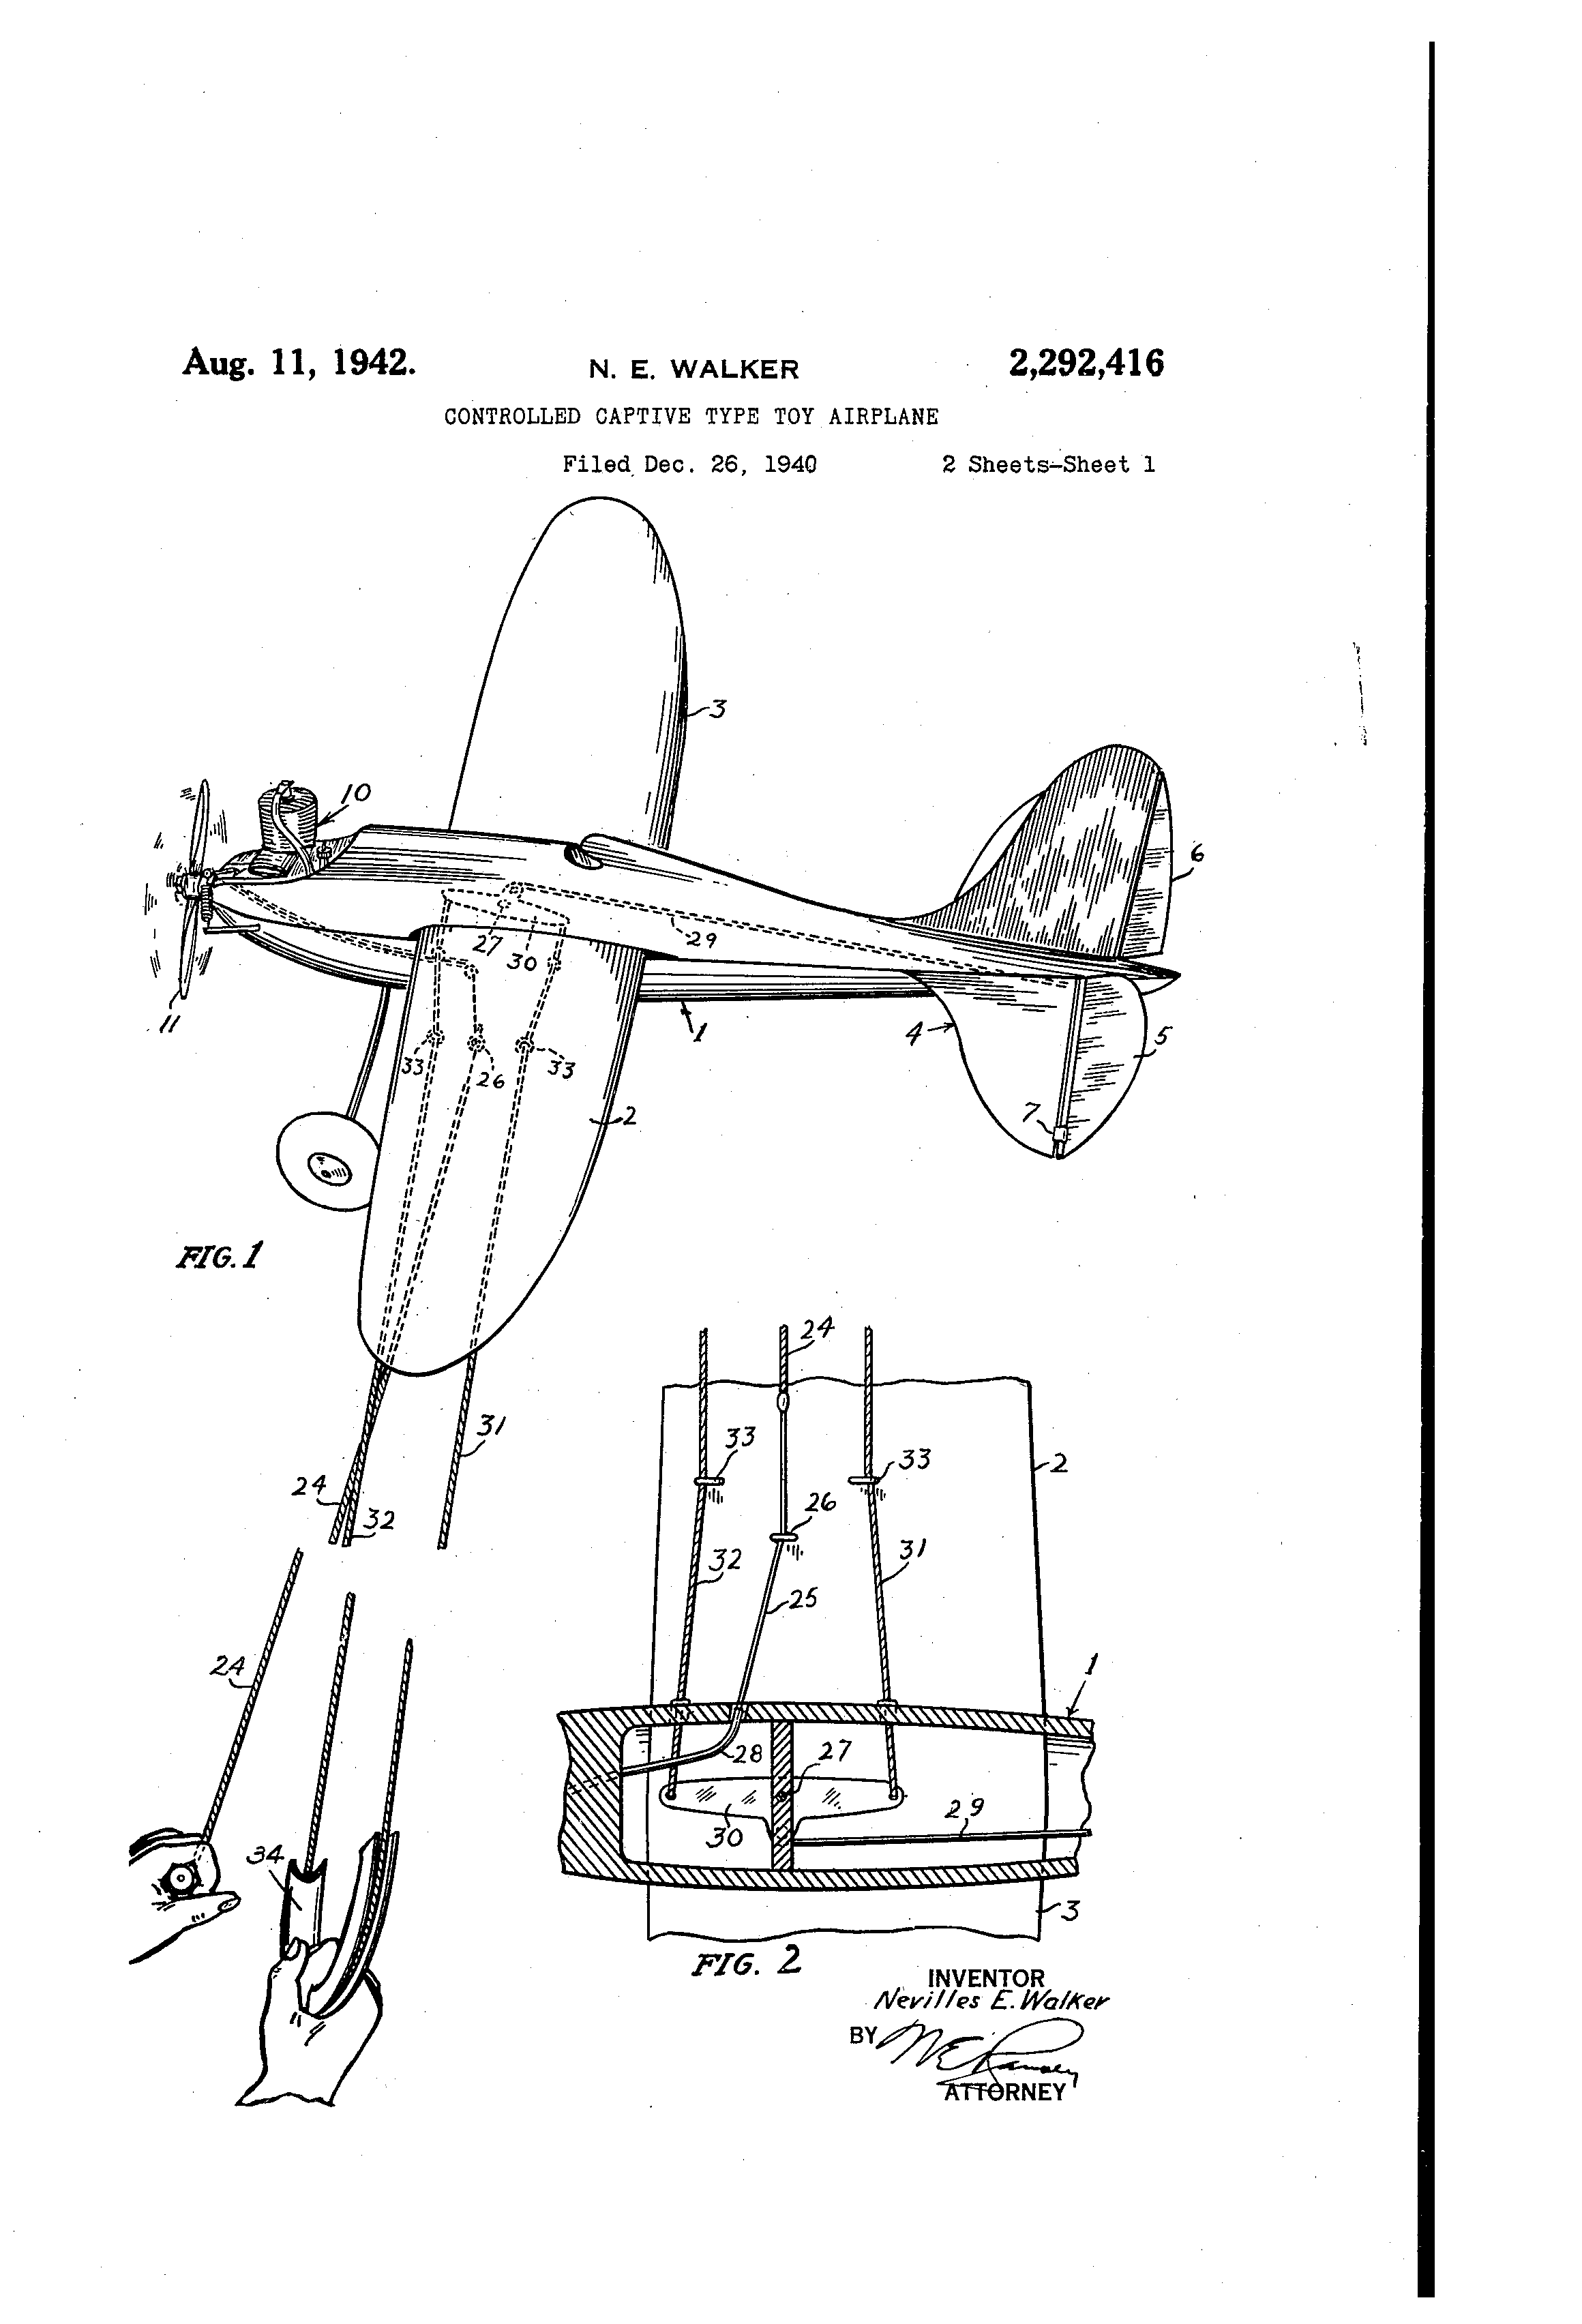 Walker's patent for the Firball and the Control line system.